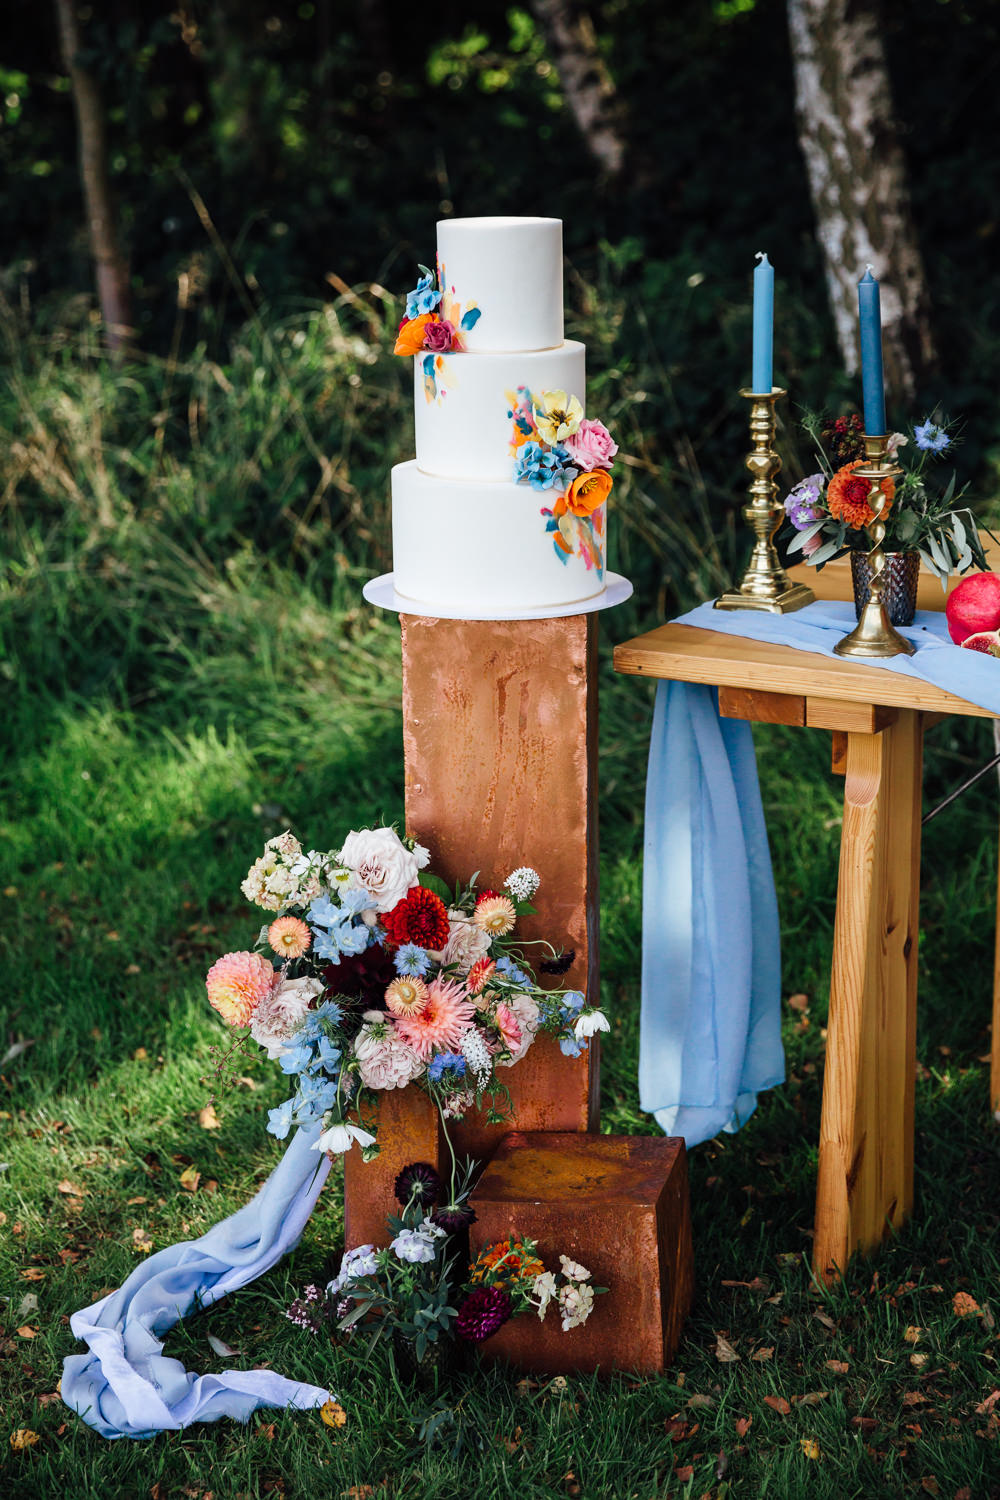 Cake Table Wooden Plinth Autumn Festival Wedding Ideas Indigo and Violet Photography